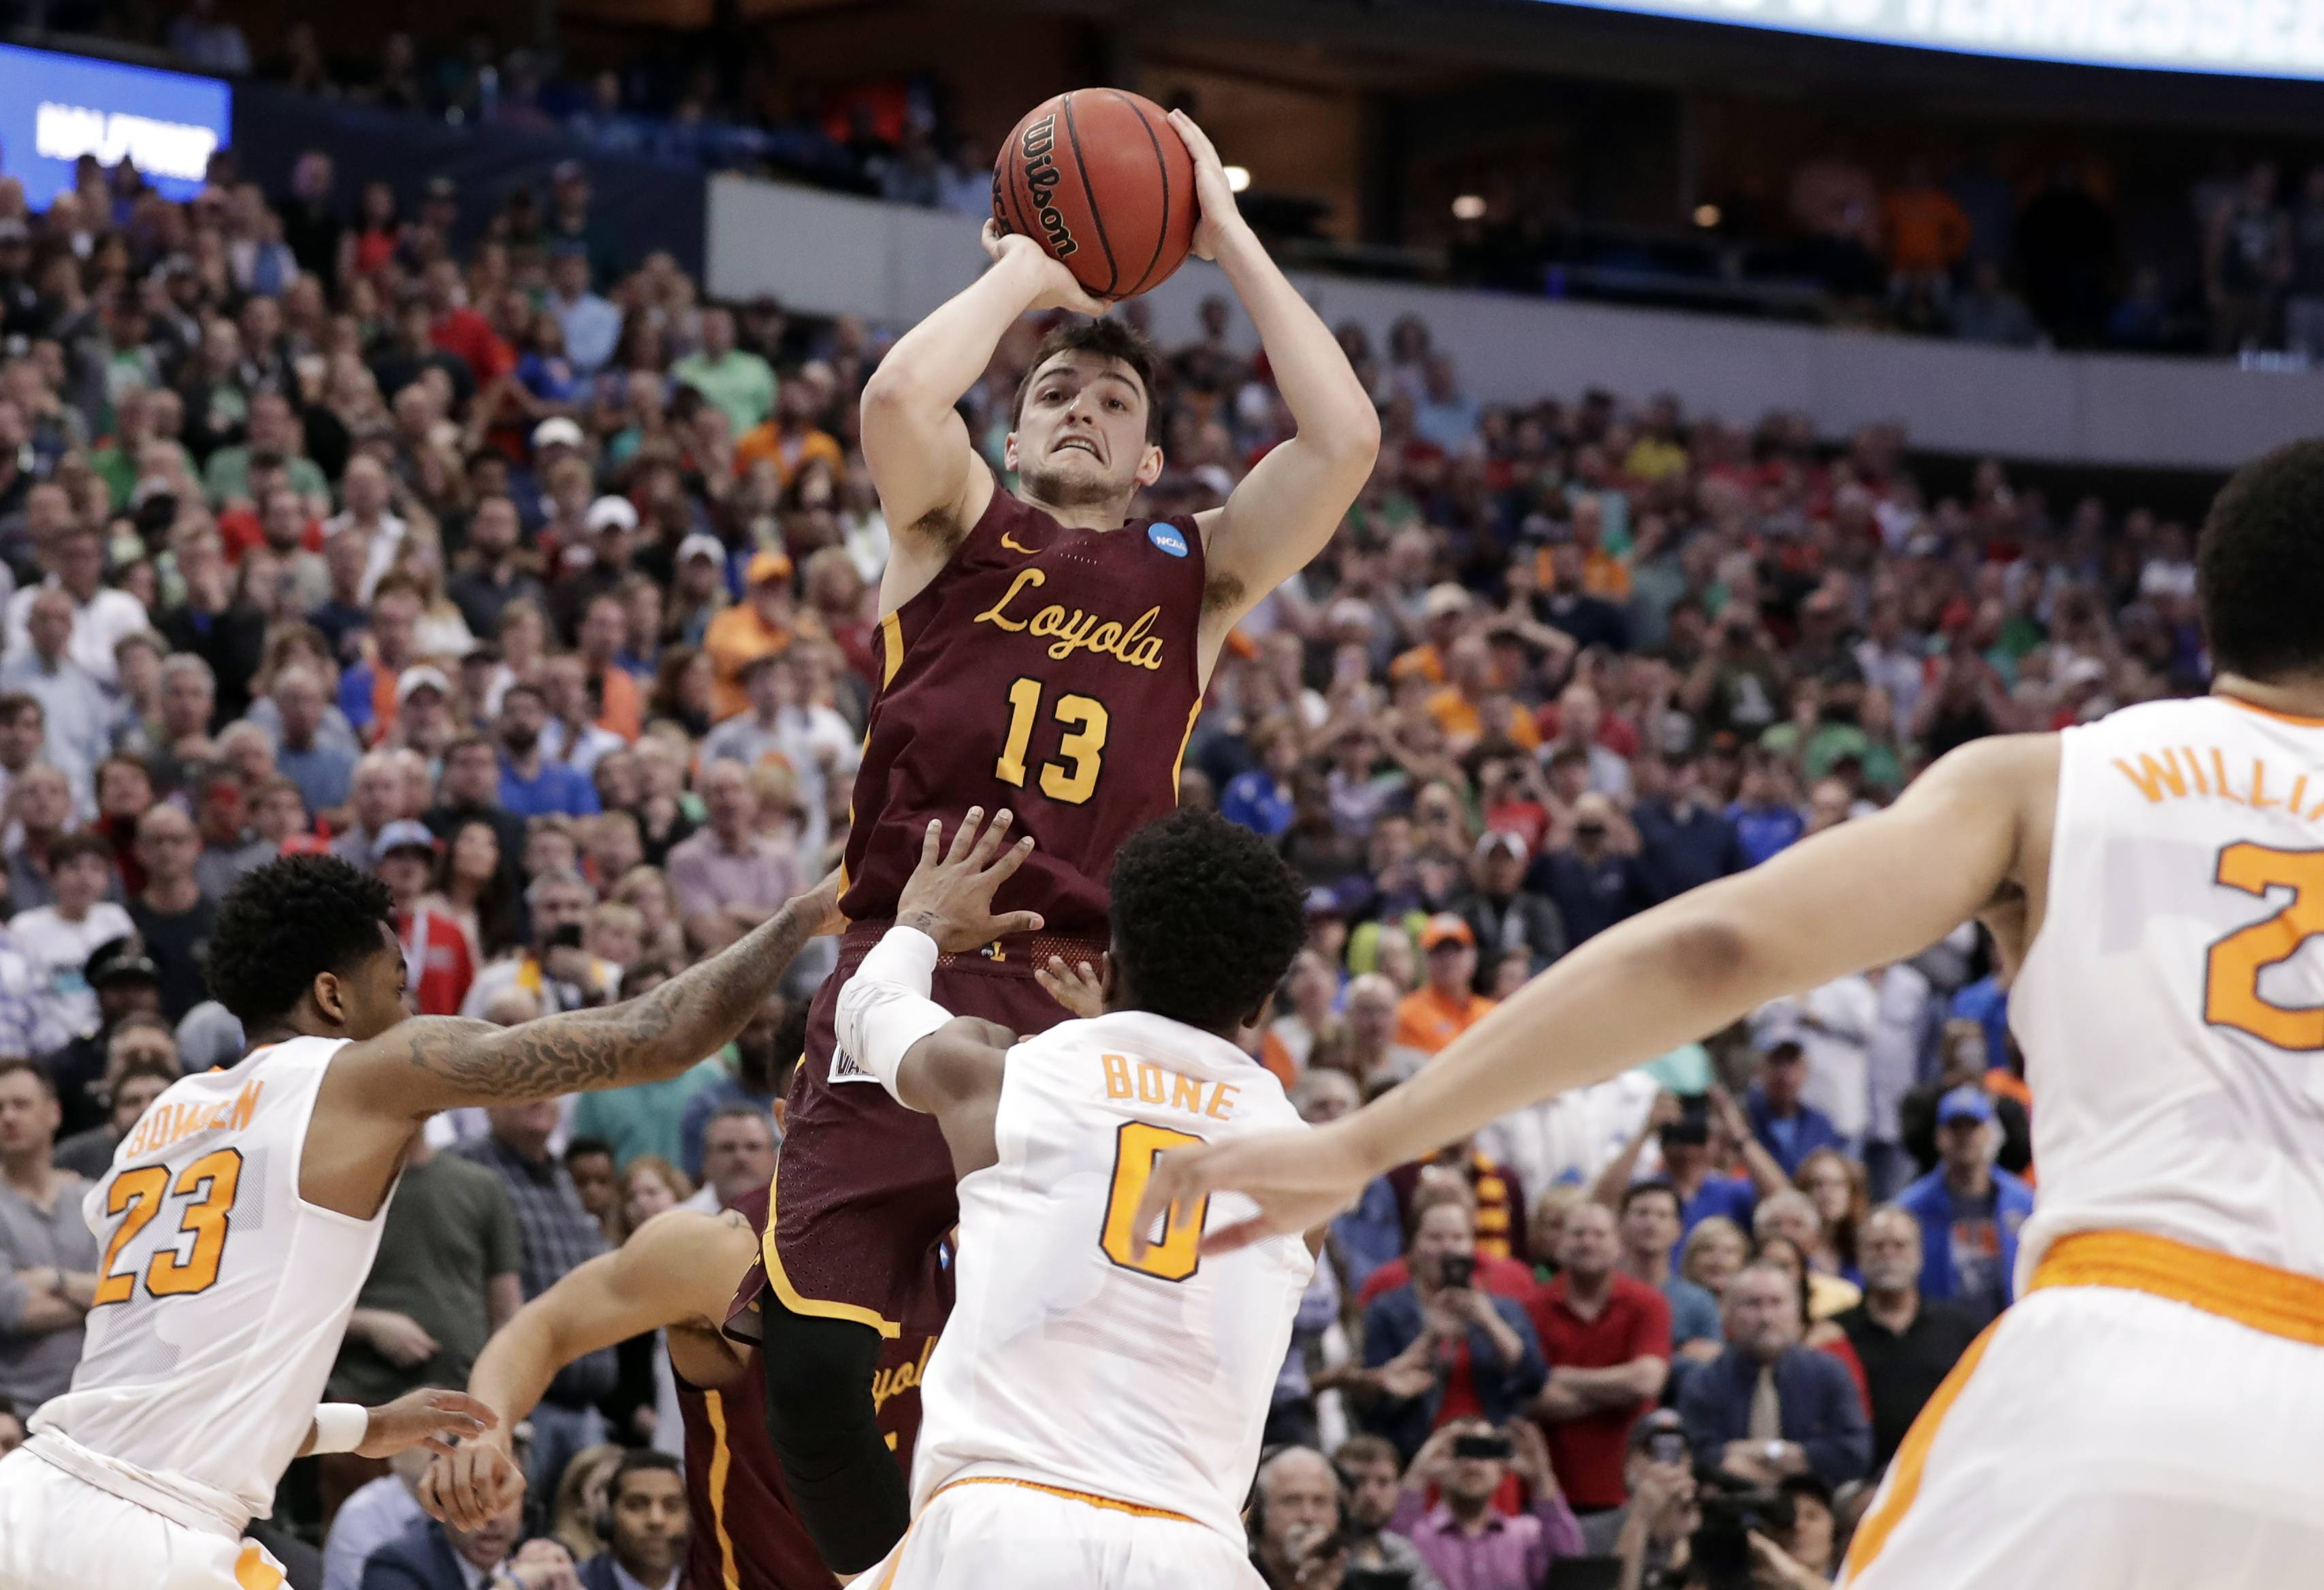 Loyola-Chicago guard Clayton Custer (13) shoots over Tennessee's Jordan Bowden (23) and Jordan Bone (0) to score in the final seconds of a second-round game at the NCAA men's college basketball tournament in Dallas, Saturday. The shot helped Loyola to a 63-62 win.